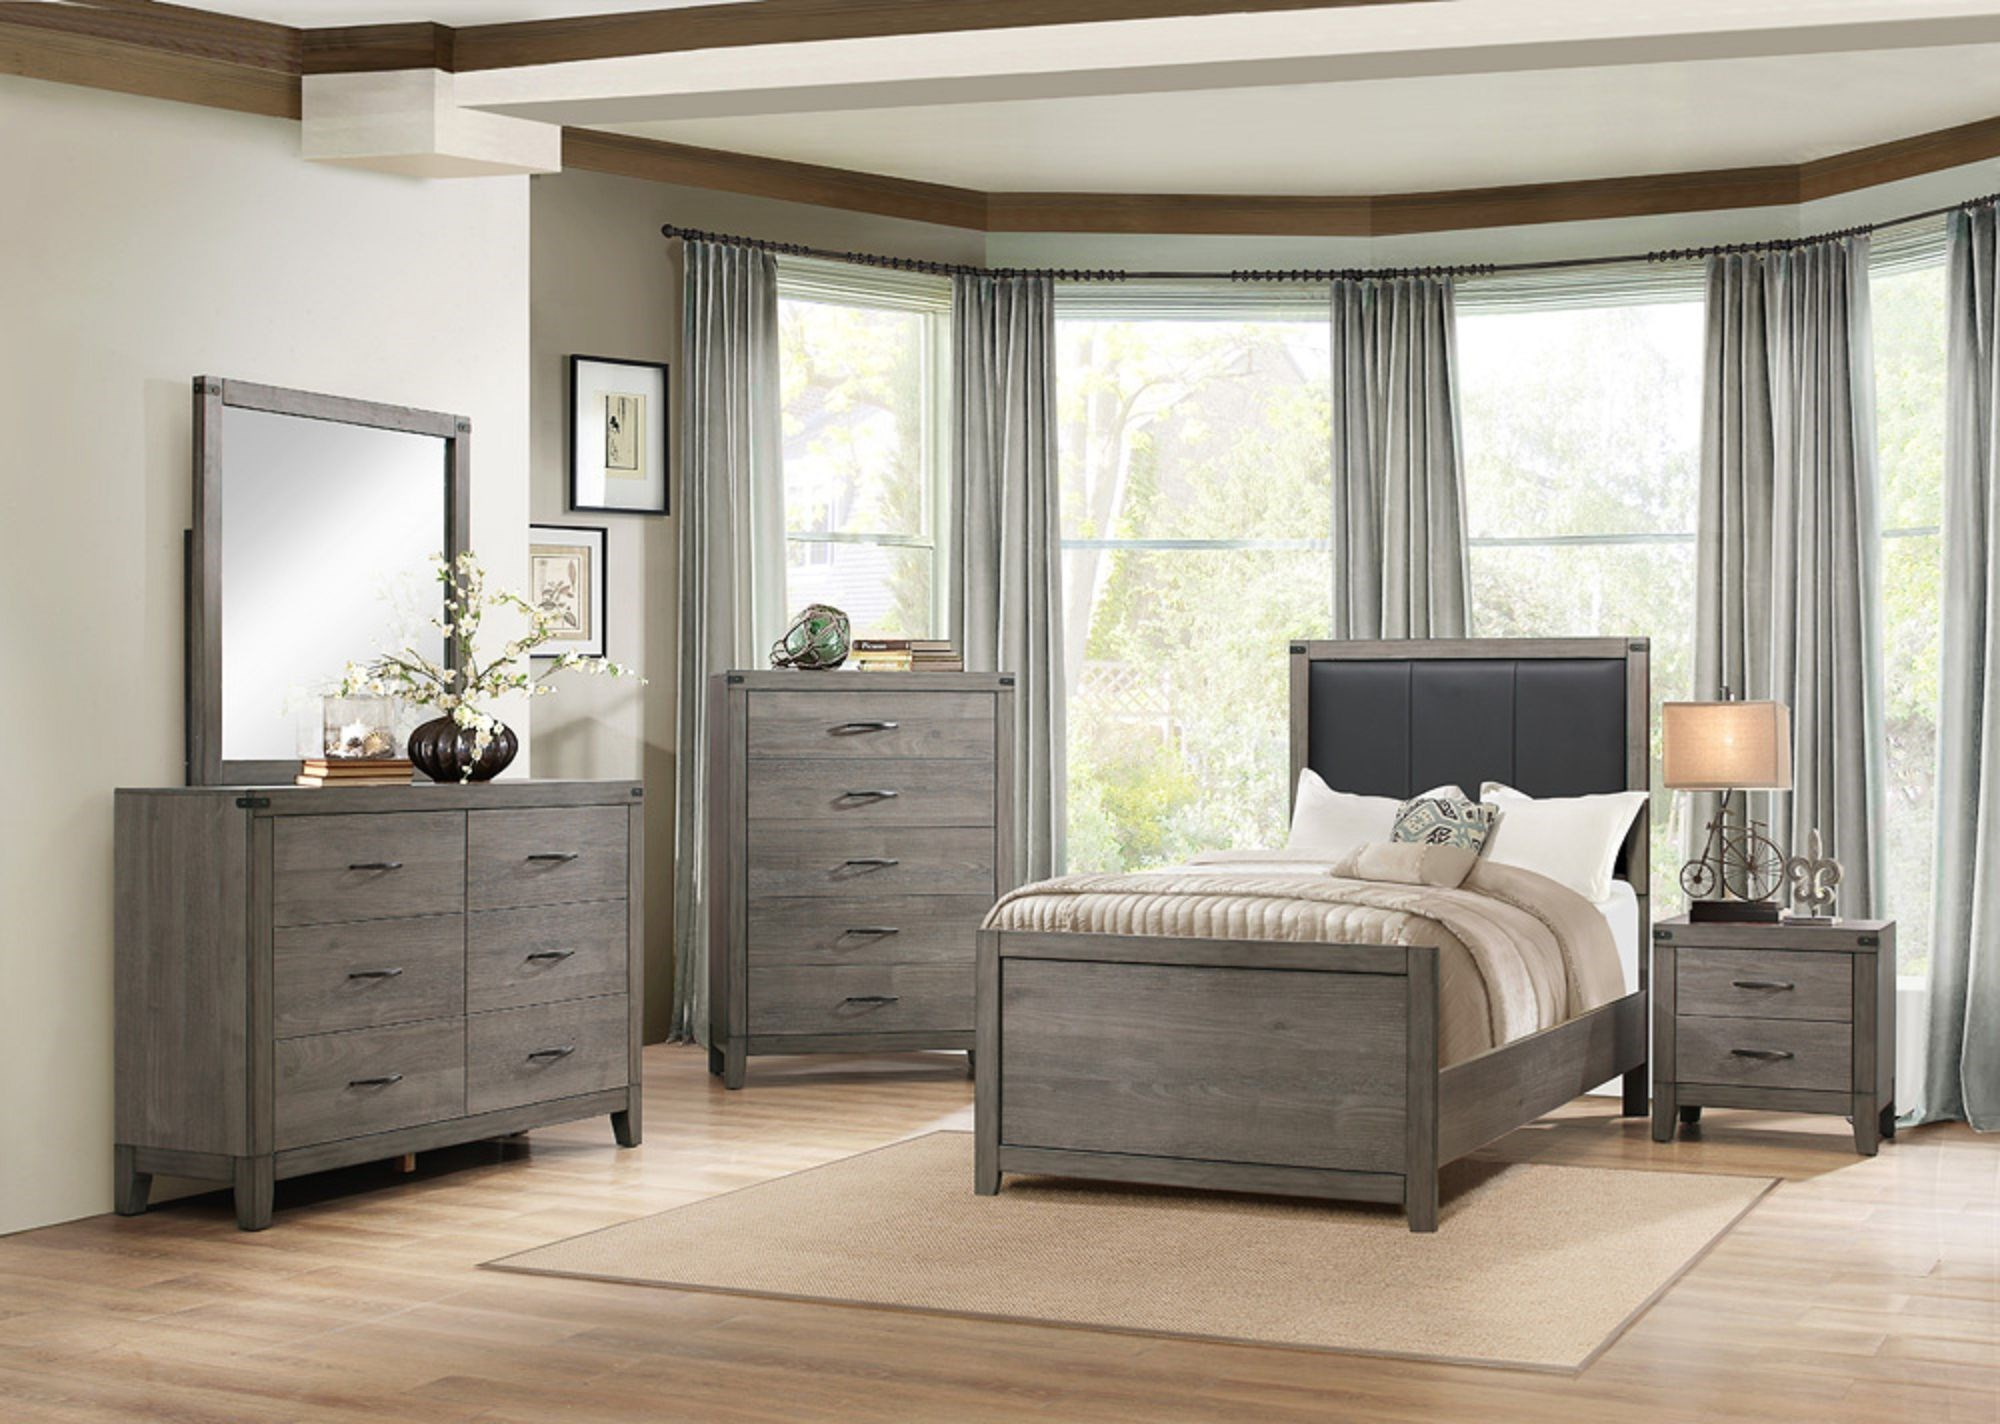 Bedroom Groups: Homelegance 2042 Contemporary Twin Bedroom Group